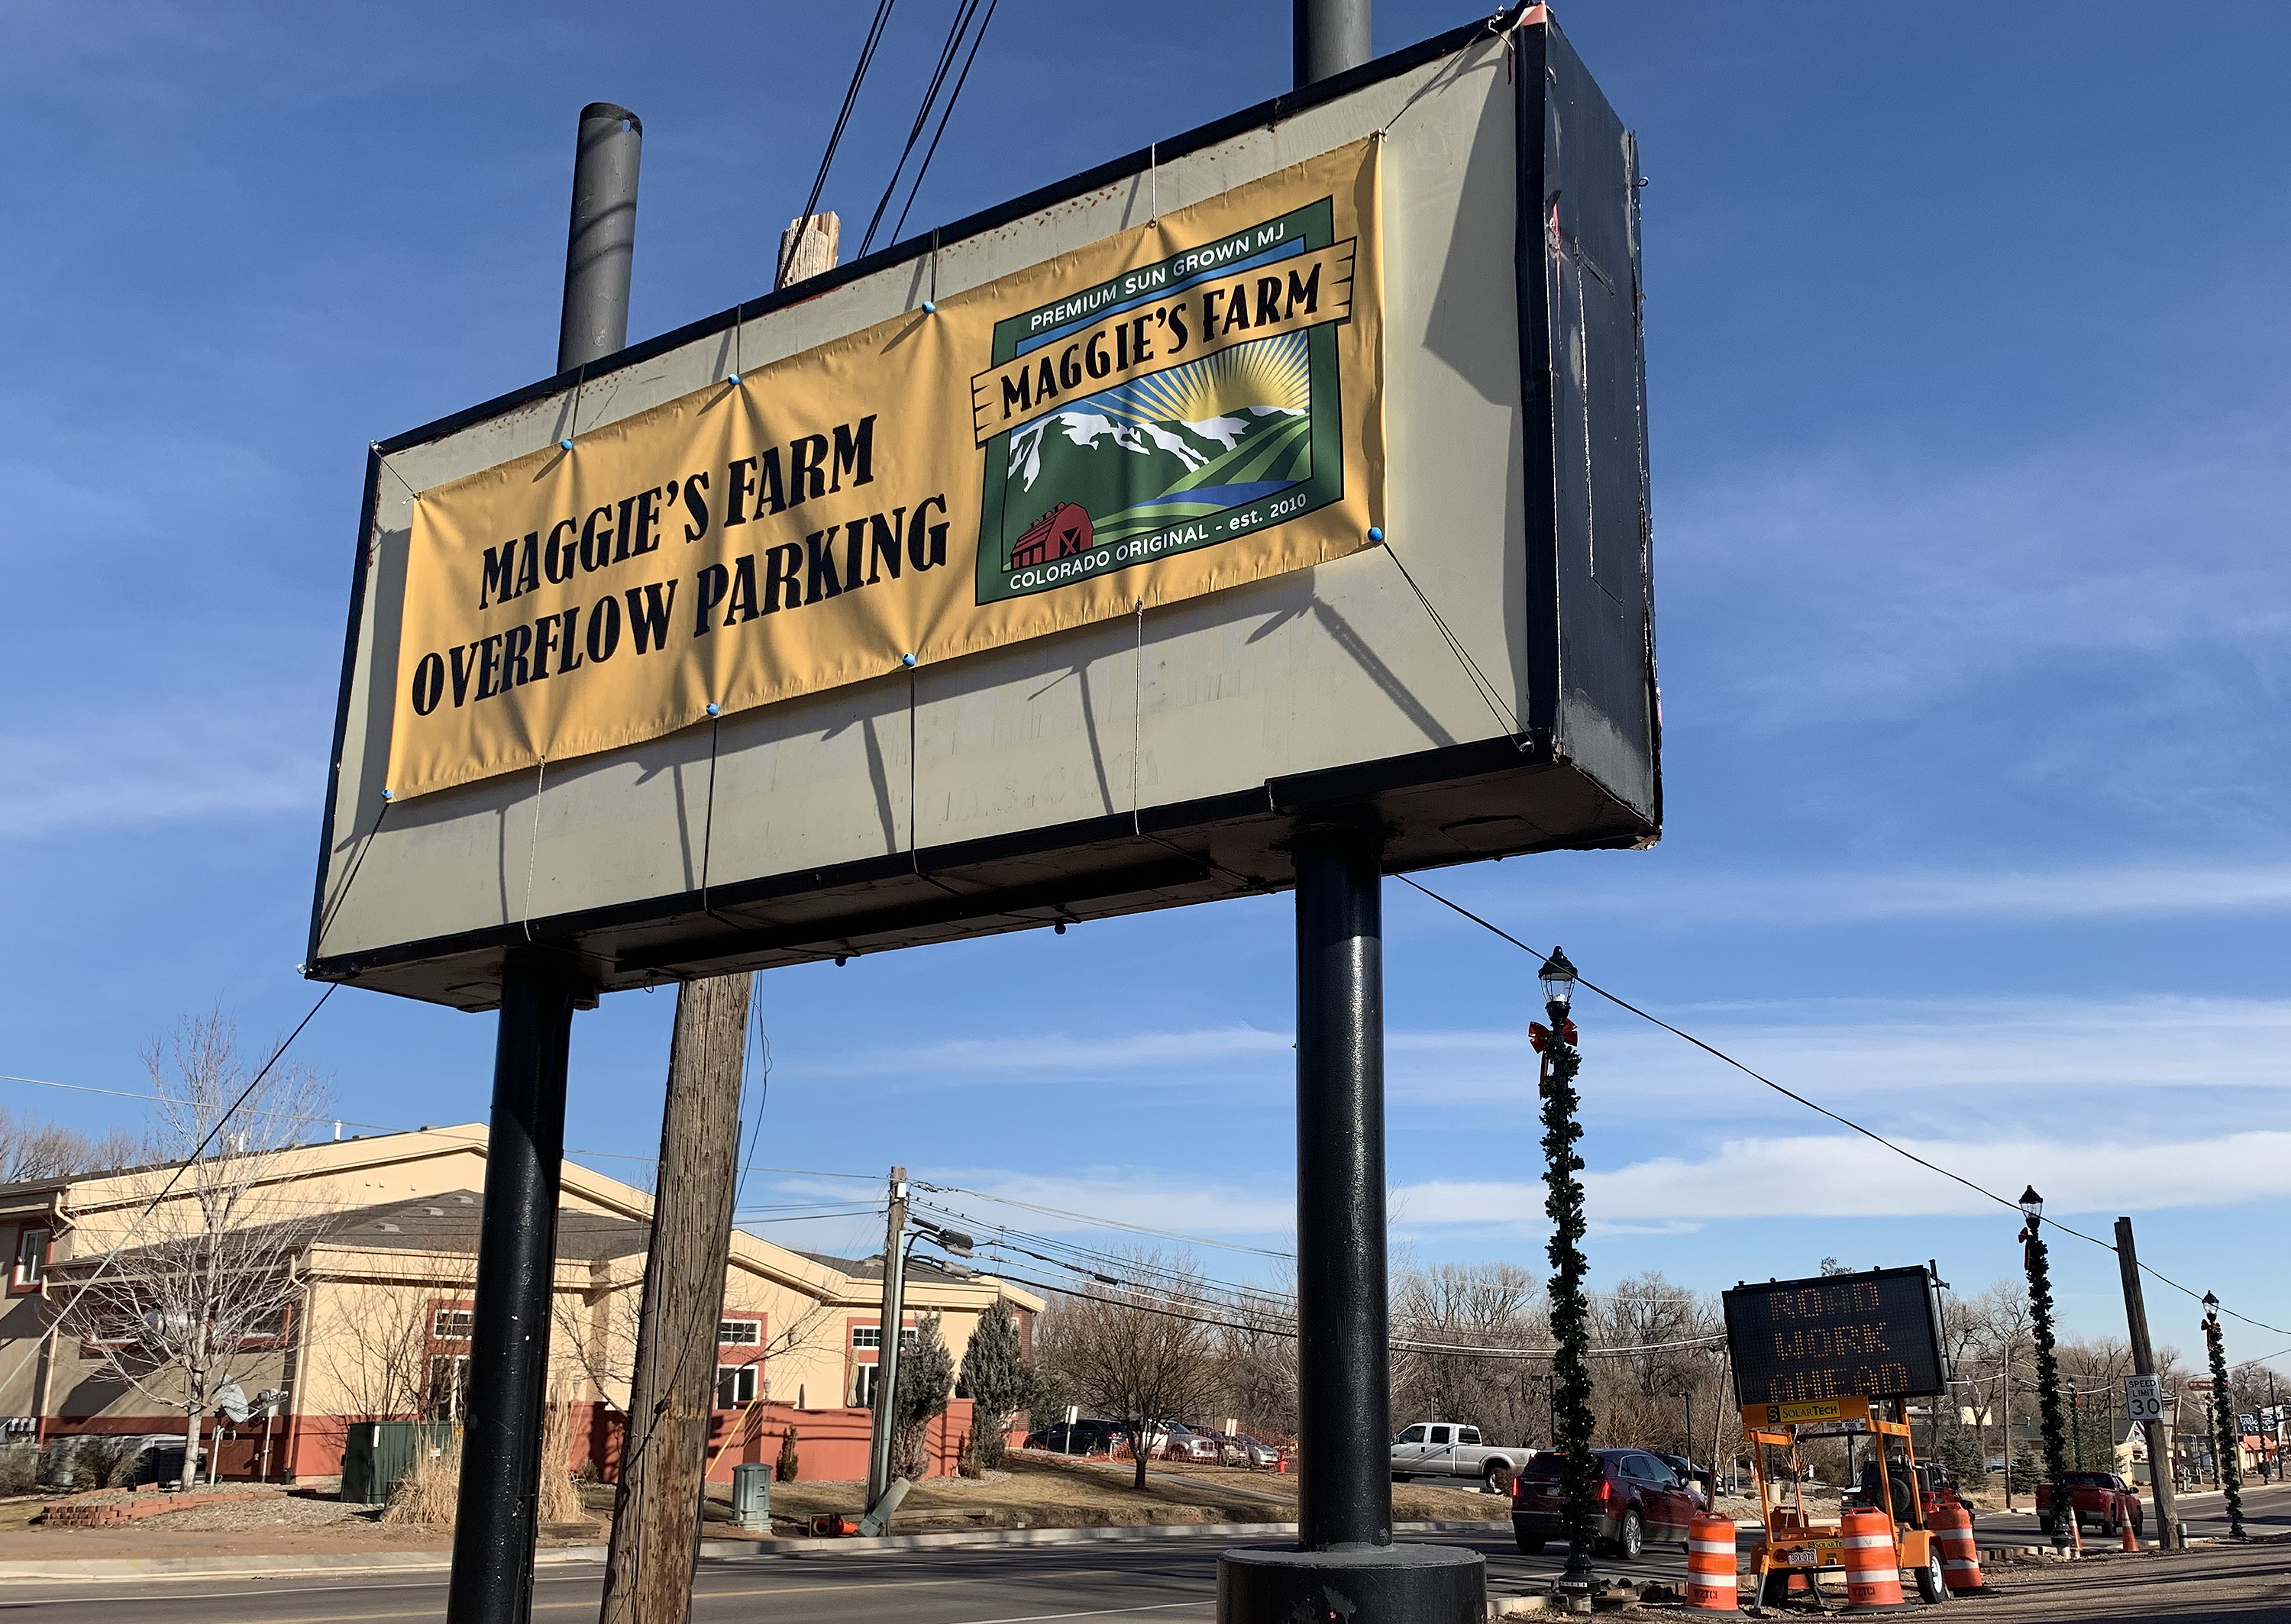 <p>Marijuana sales taxes help fund a Manitou Springs beautification project photographed Dec. 26, 2018, near the overflow parking for Maggie's Farm, a recreational marijuana dispensary.</p>